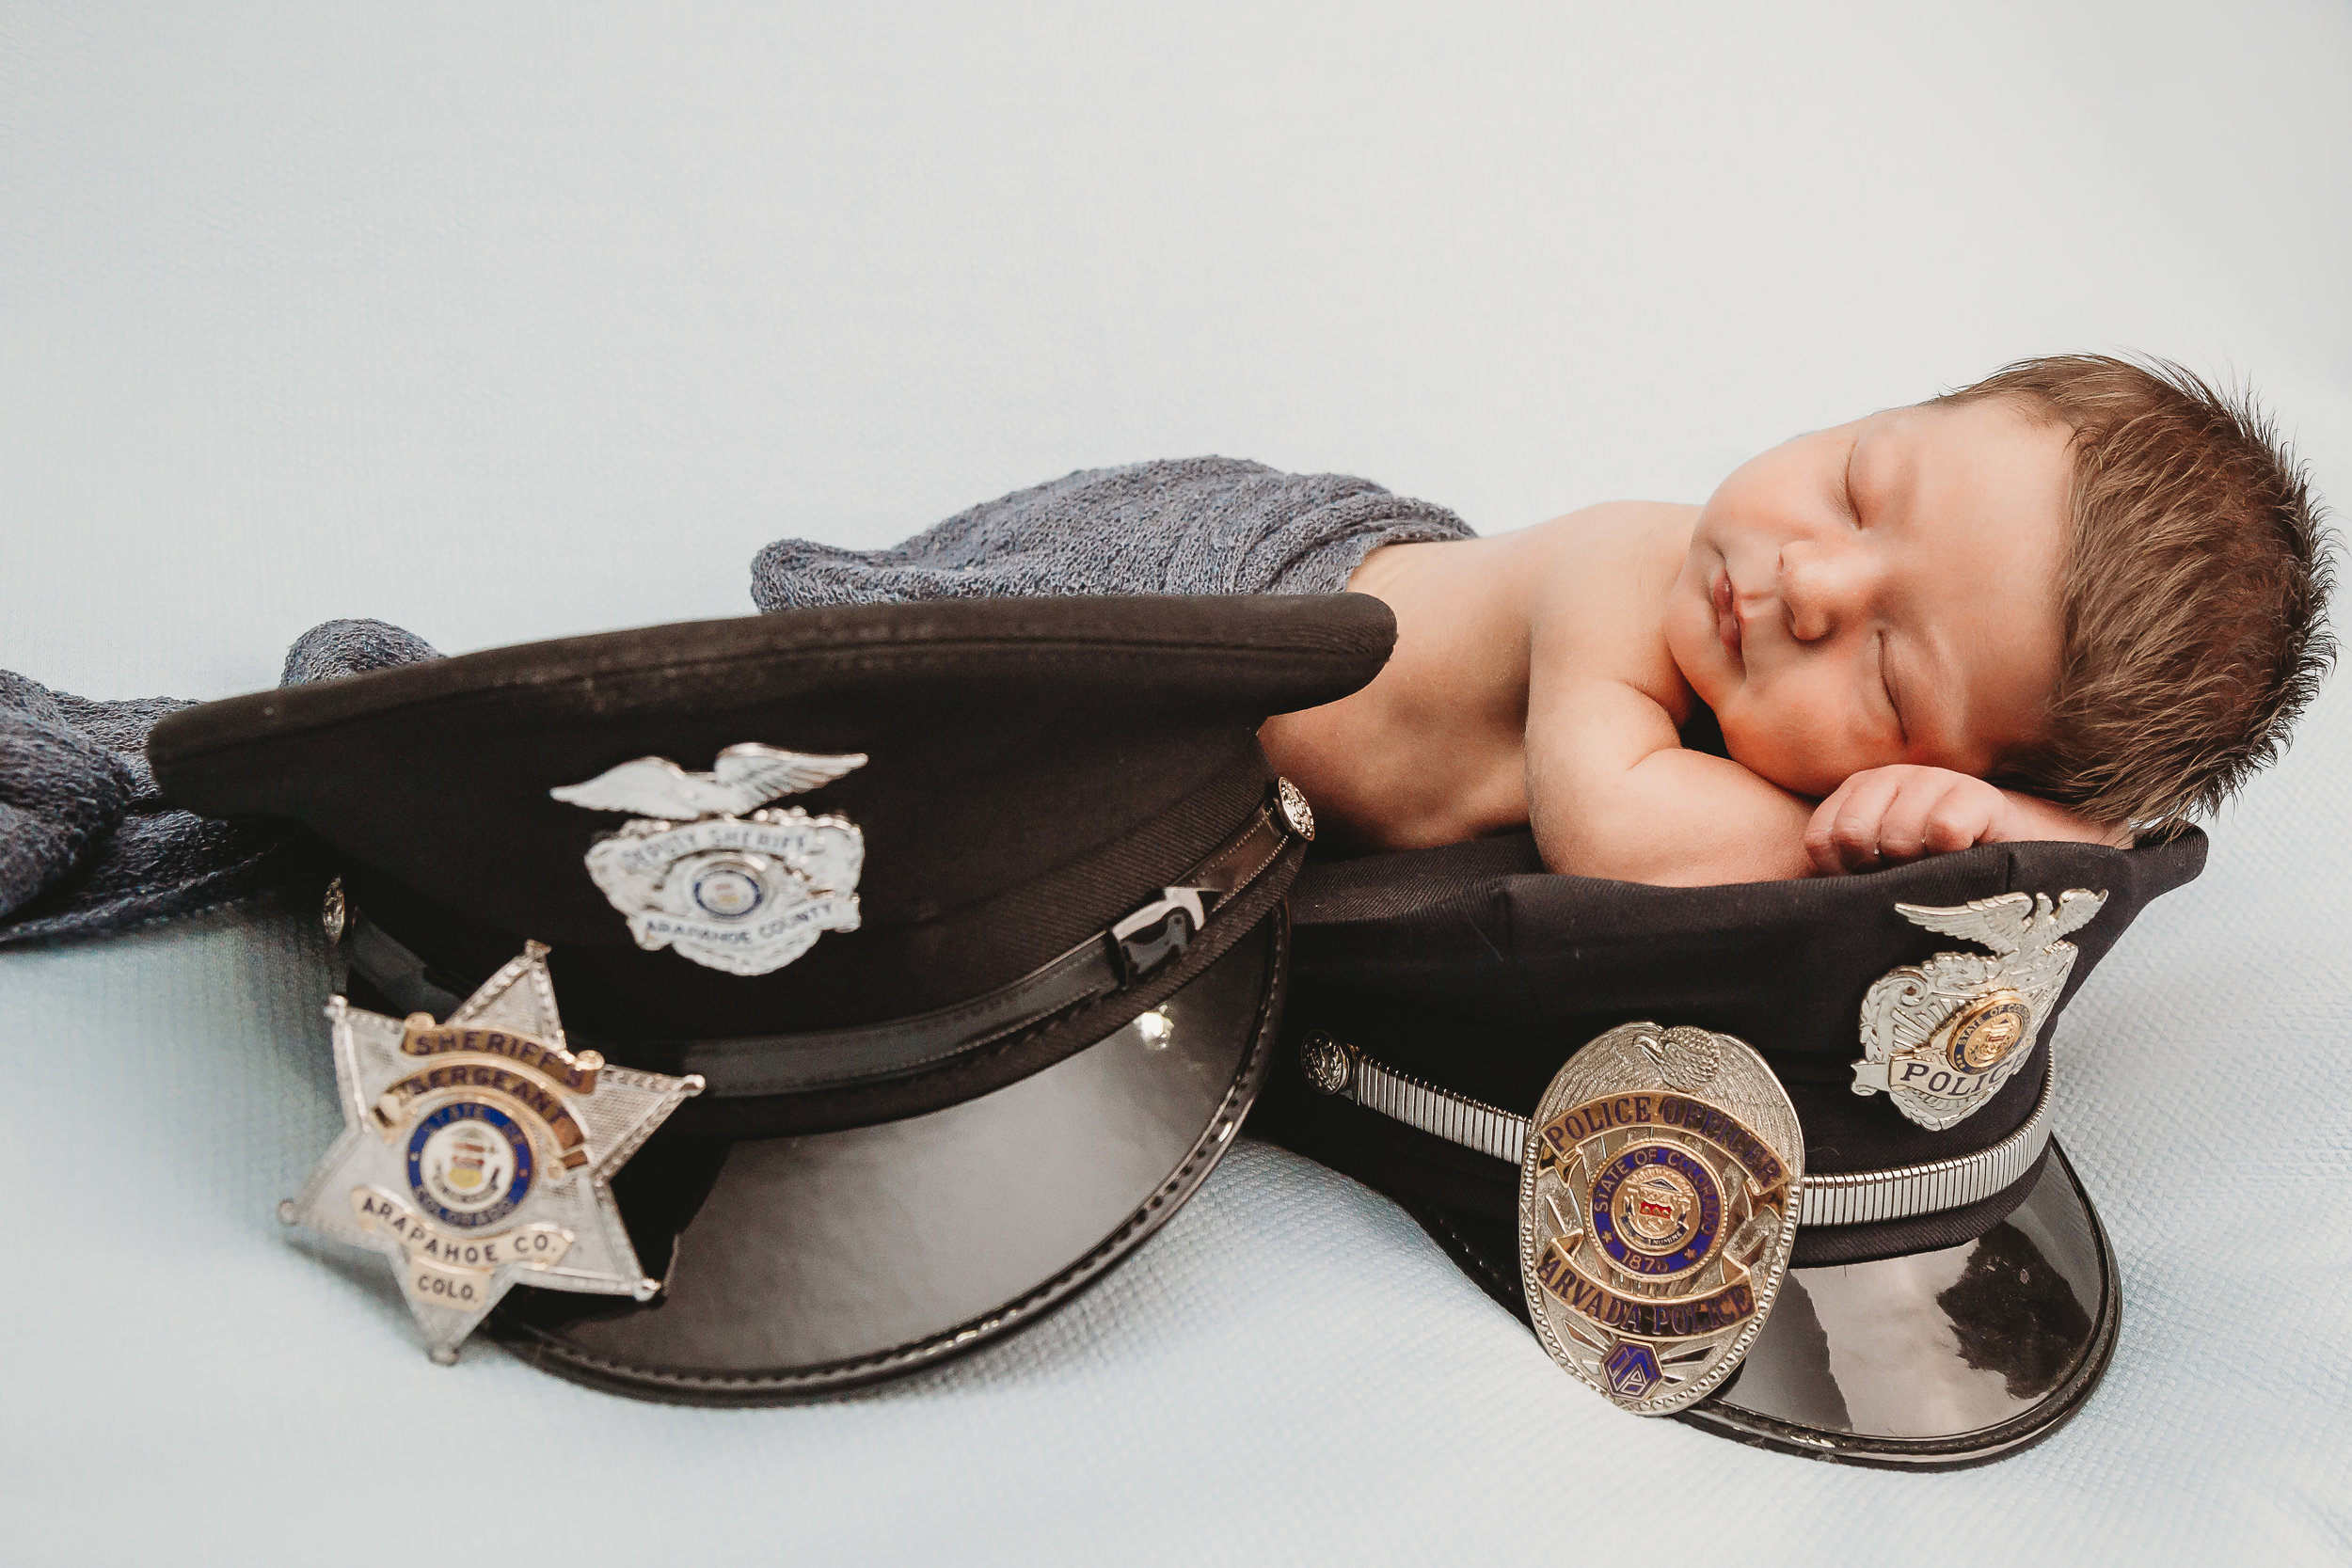 baby on police hats with badges